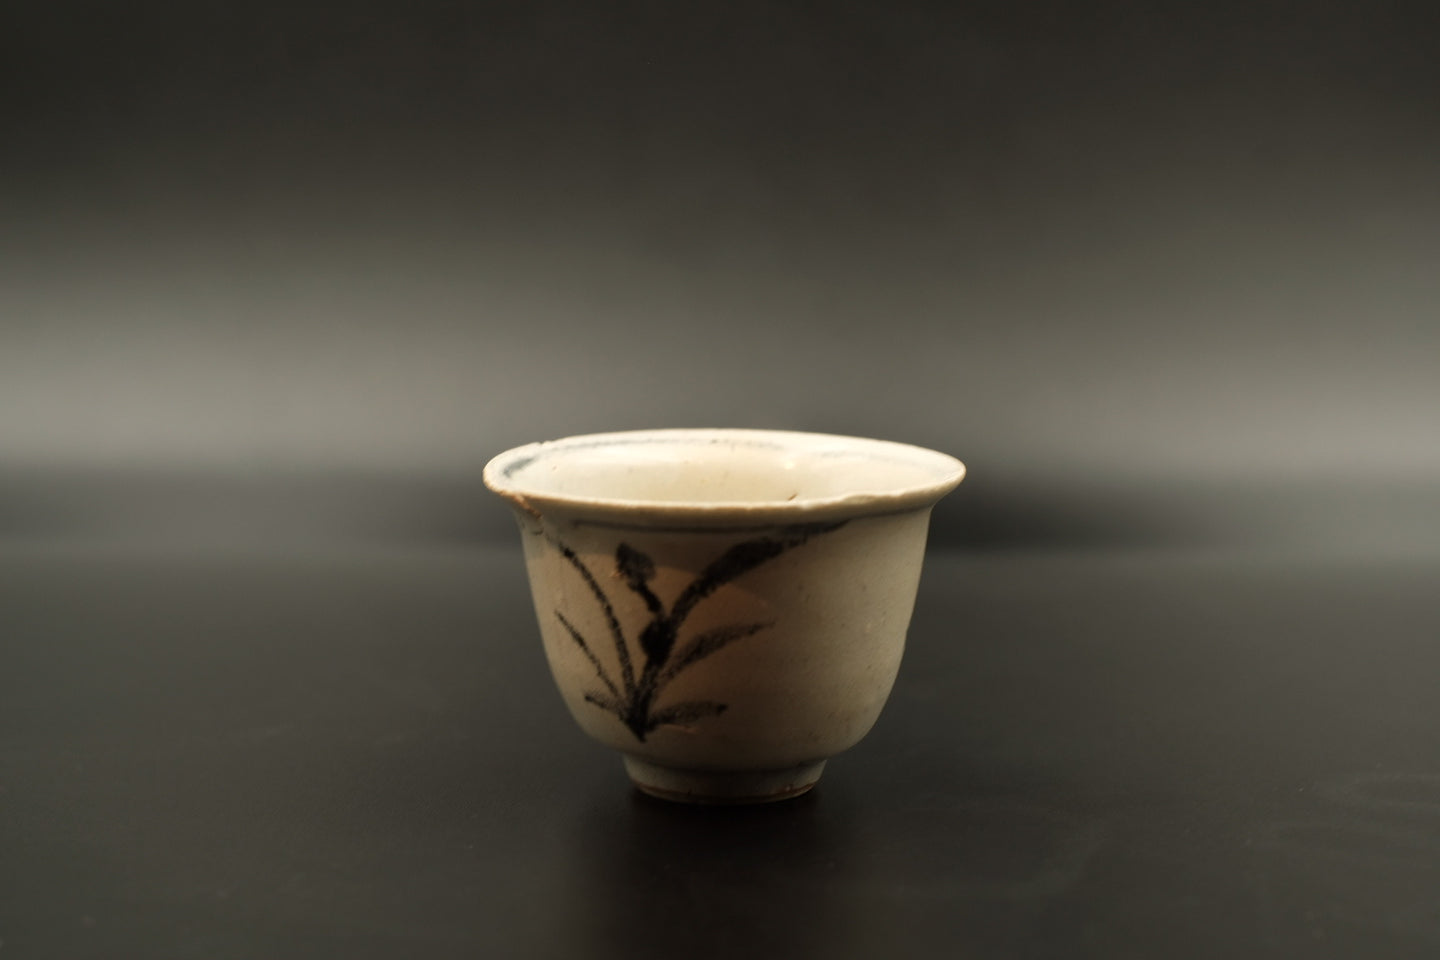 Ming Dynasty Cups